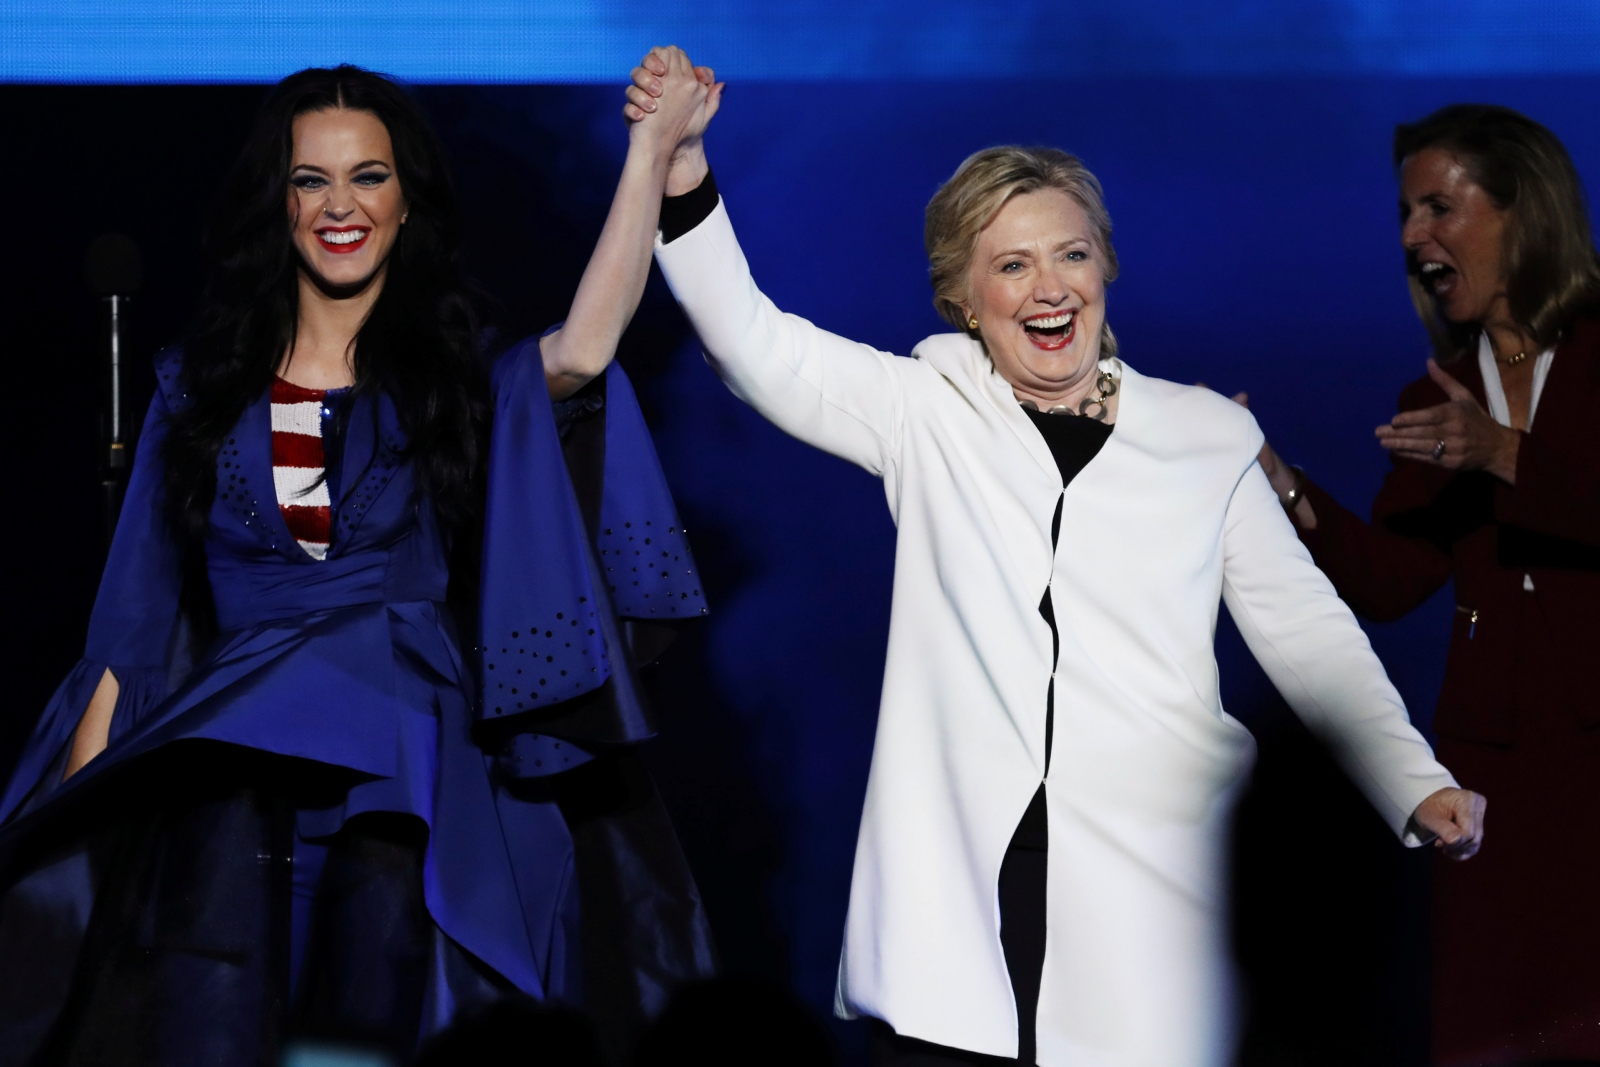 Katy Perry with Hillary Clinton